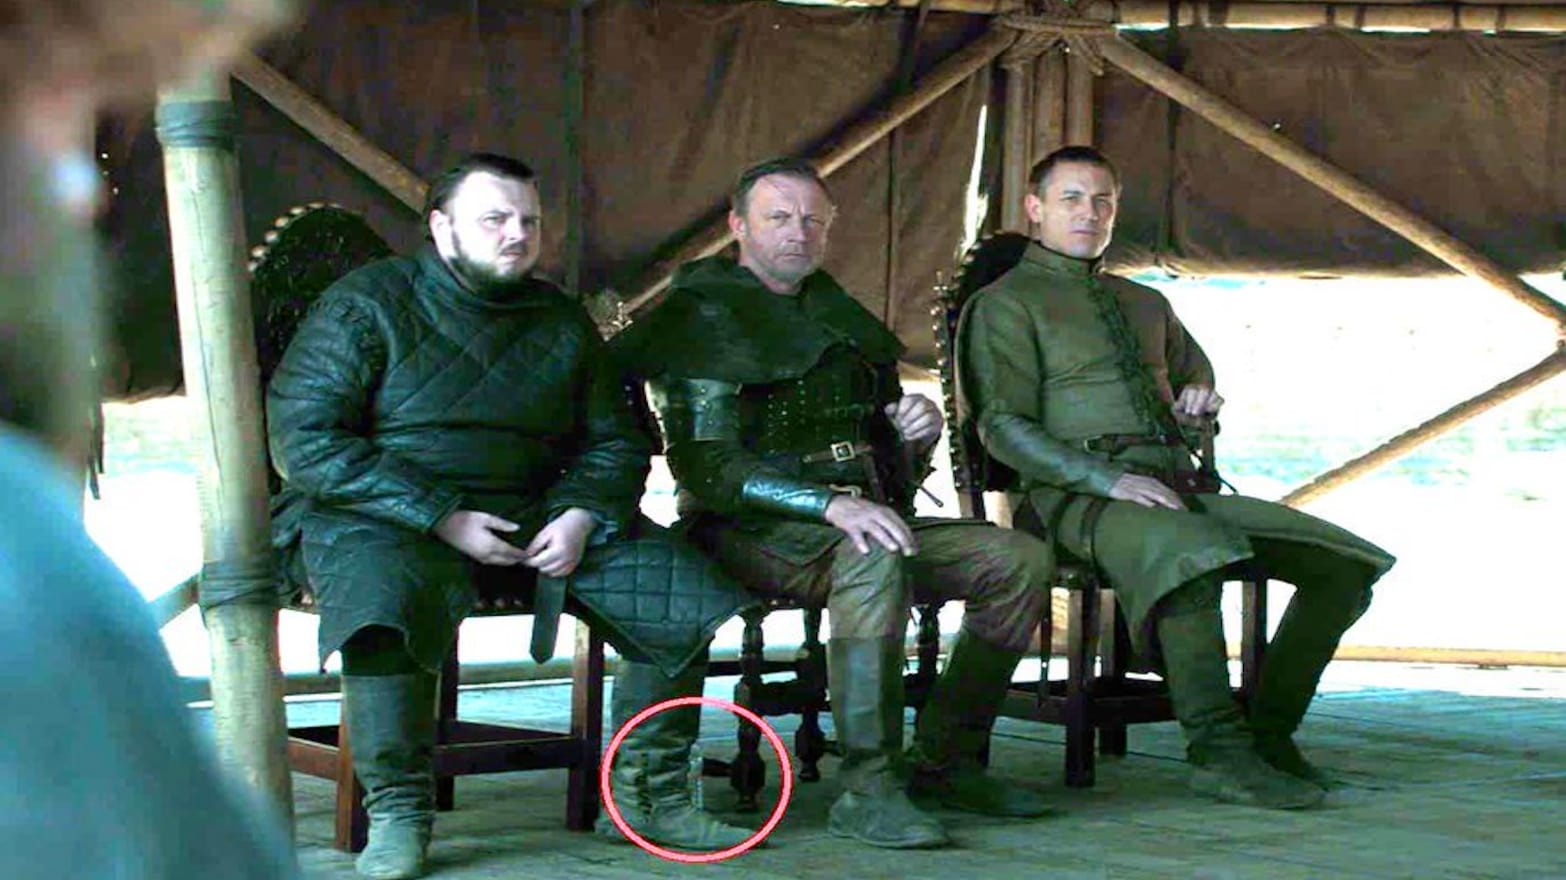 'Game of Thrones' Finale Gaffe: First a Coffee Cup, Now a Plastic Water Bottle